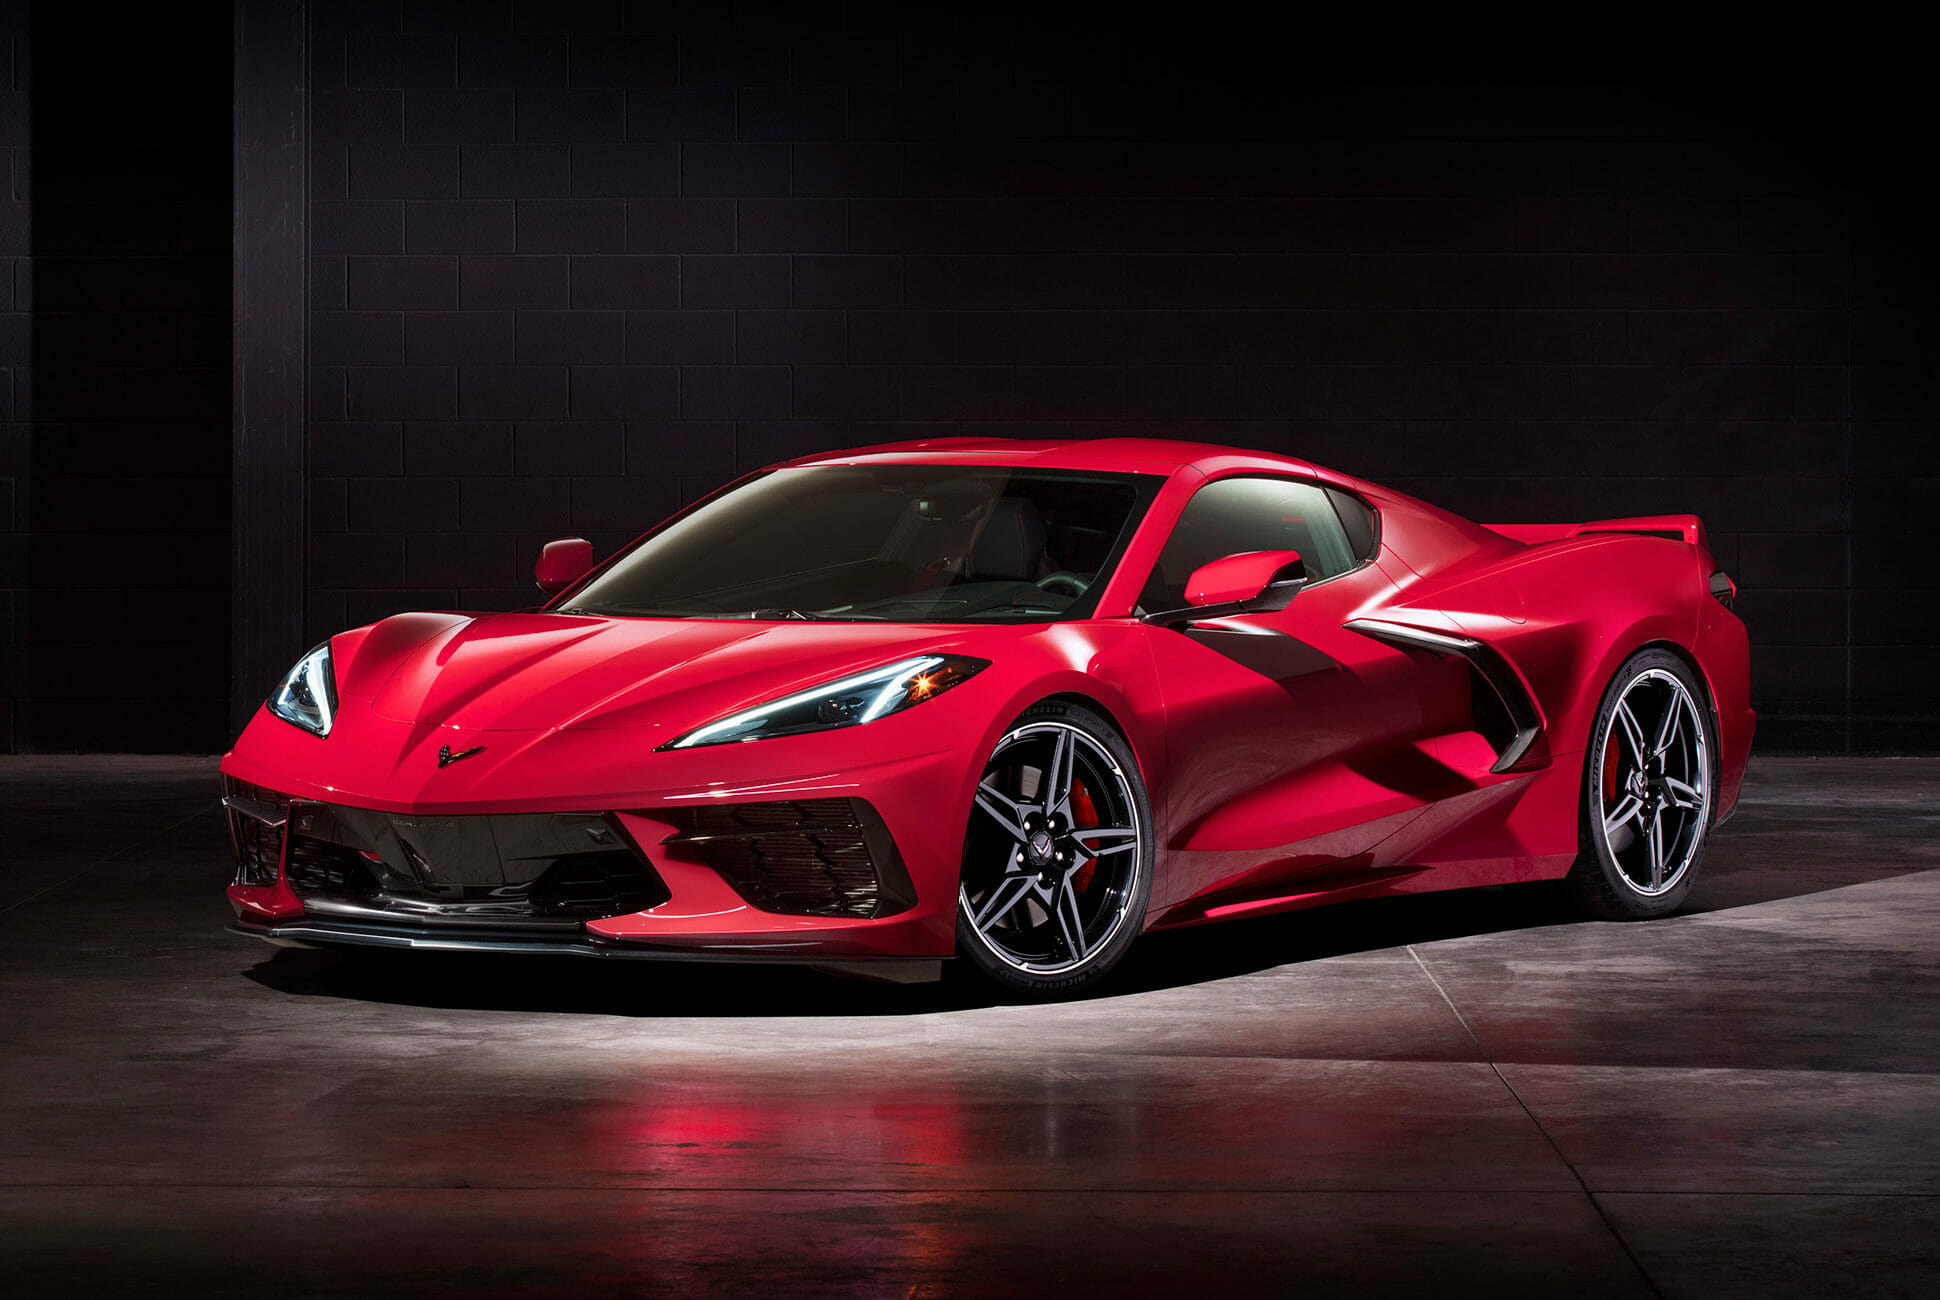 88 The 2020 Chevrolet Corvette Images Reviews with 2020 Chevrolet Corvette Images